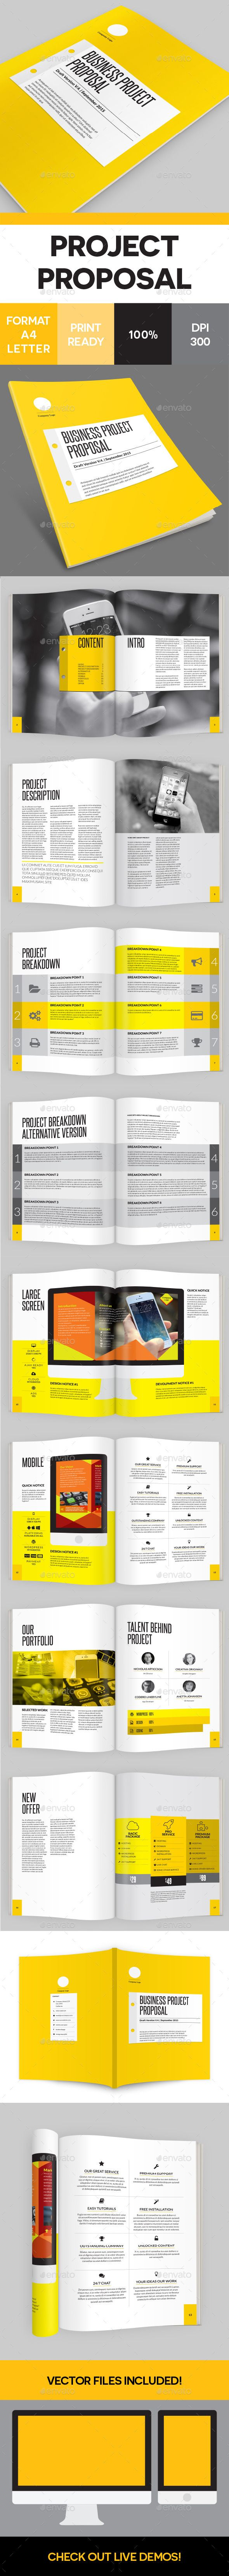 Template creative project proposal template business project plan project proposal project proposal proposal templates and template 45990220b2ba84bfa9b62b82917ce1e6 258394097353797705 template creative project proposal saigontimesfo